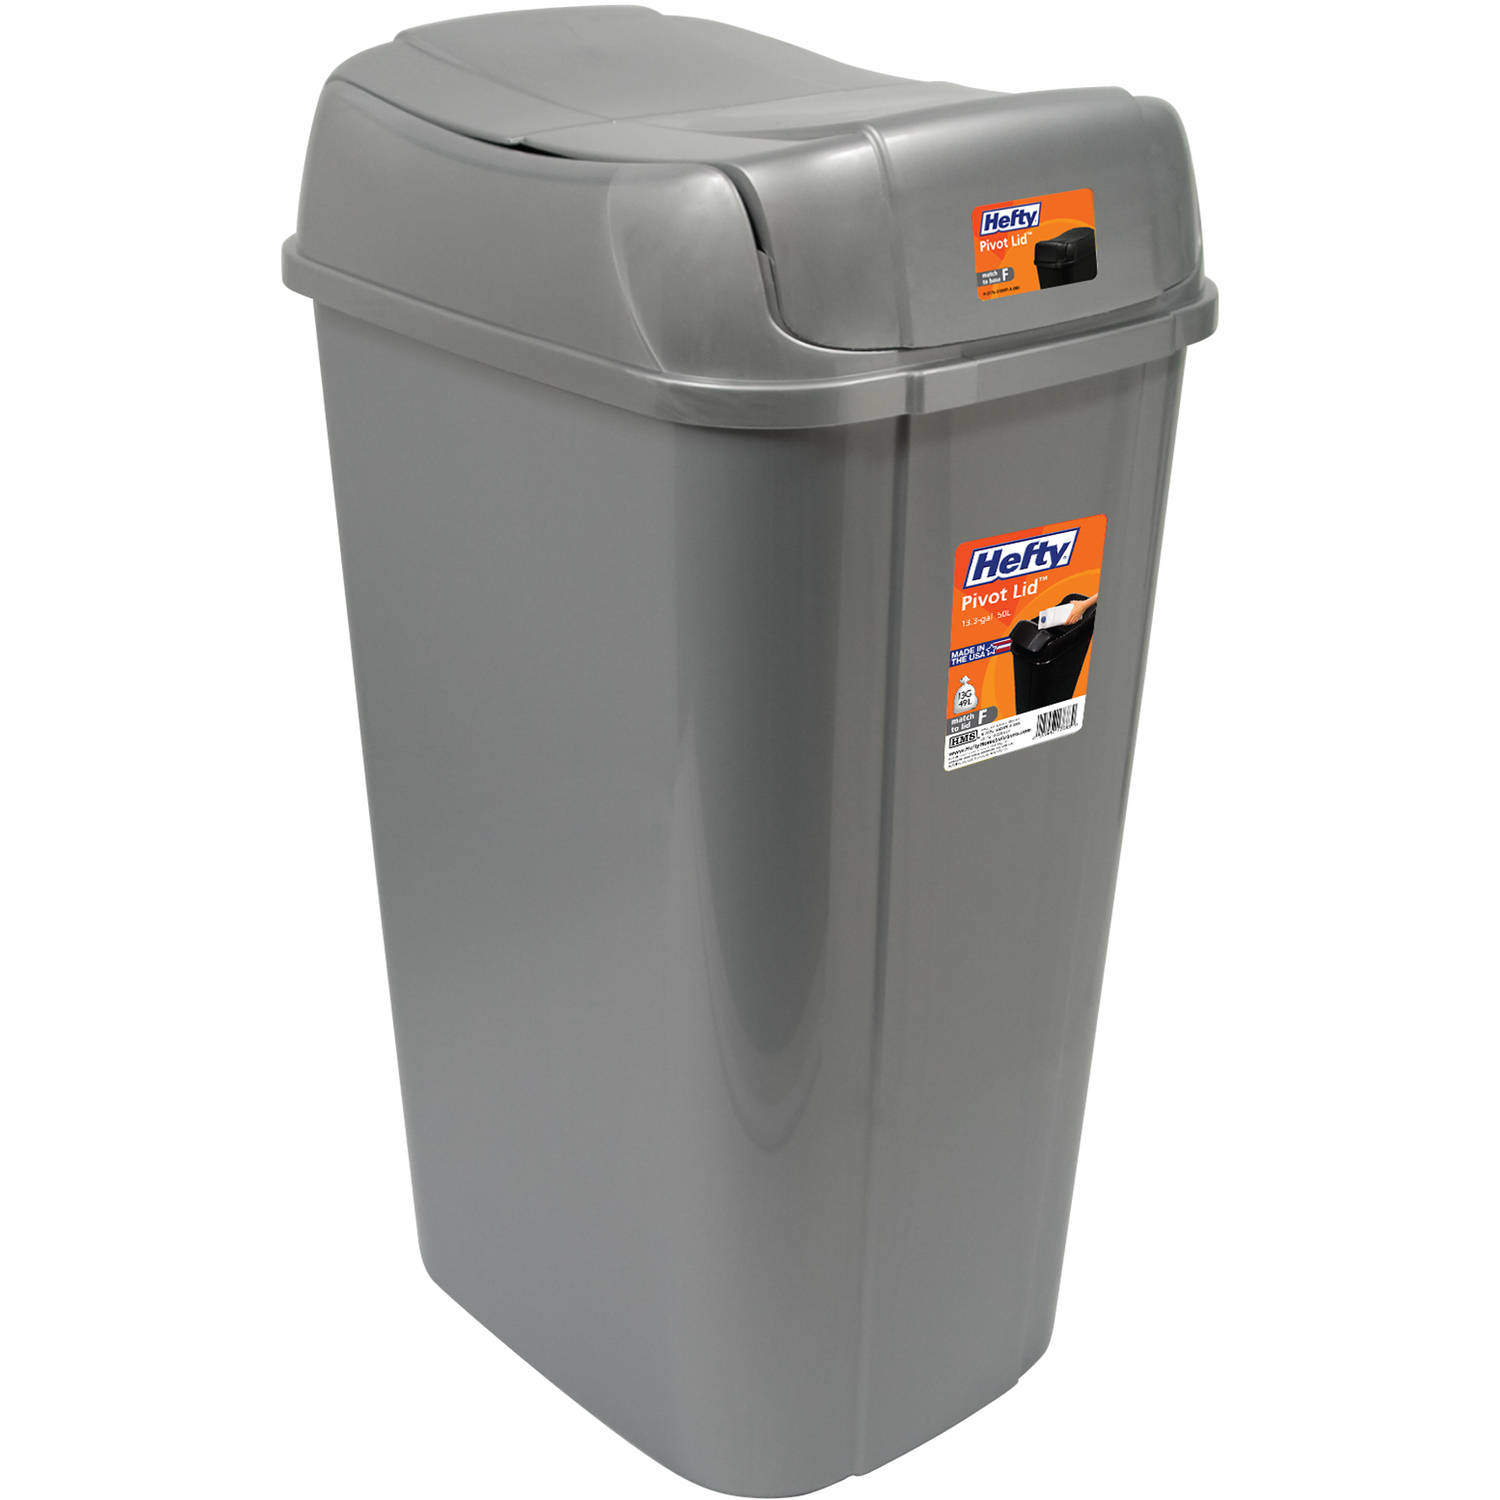 hefty pivot-lid 13.3-gallon trash can, silver - walmart